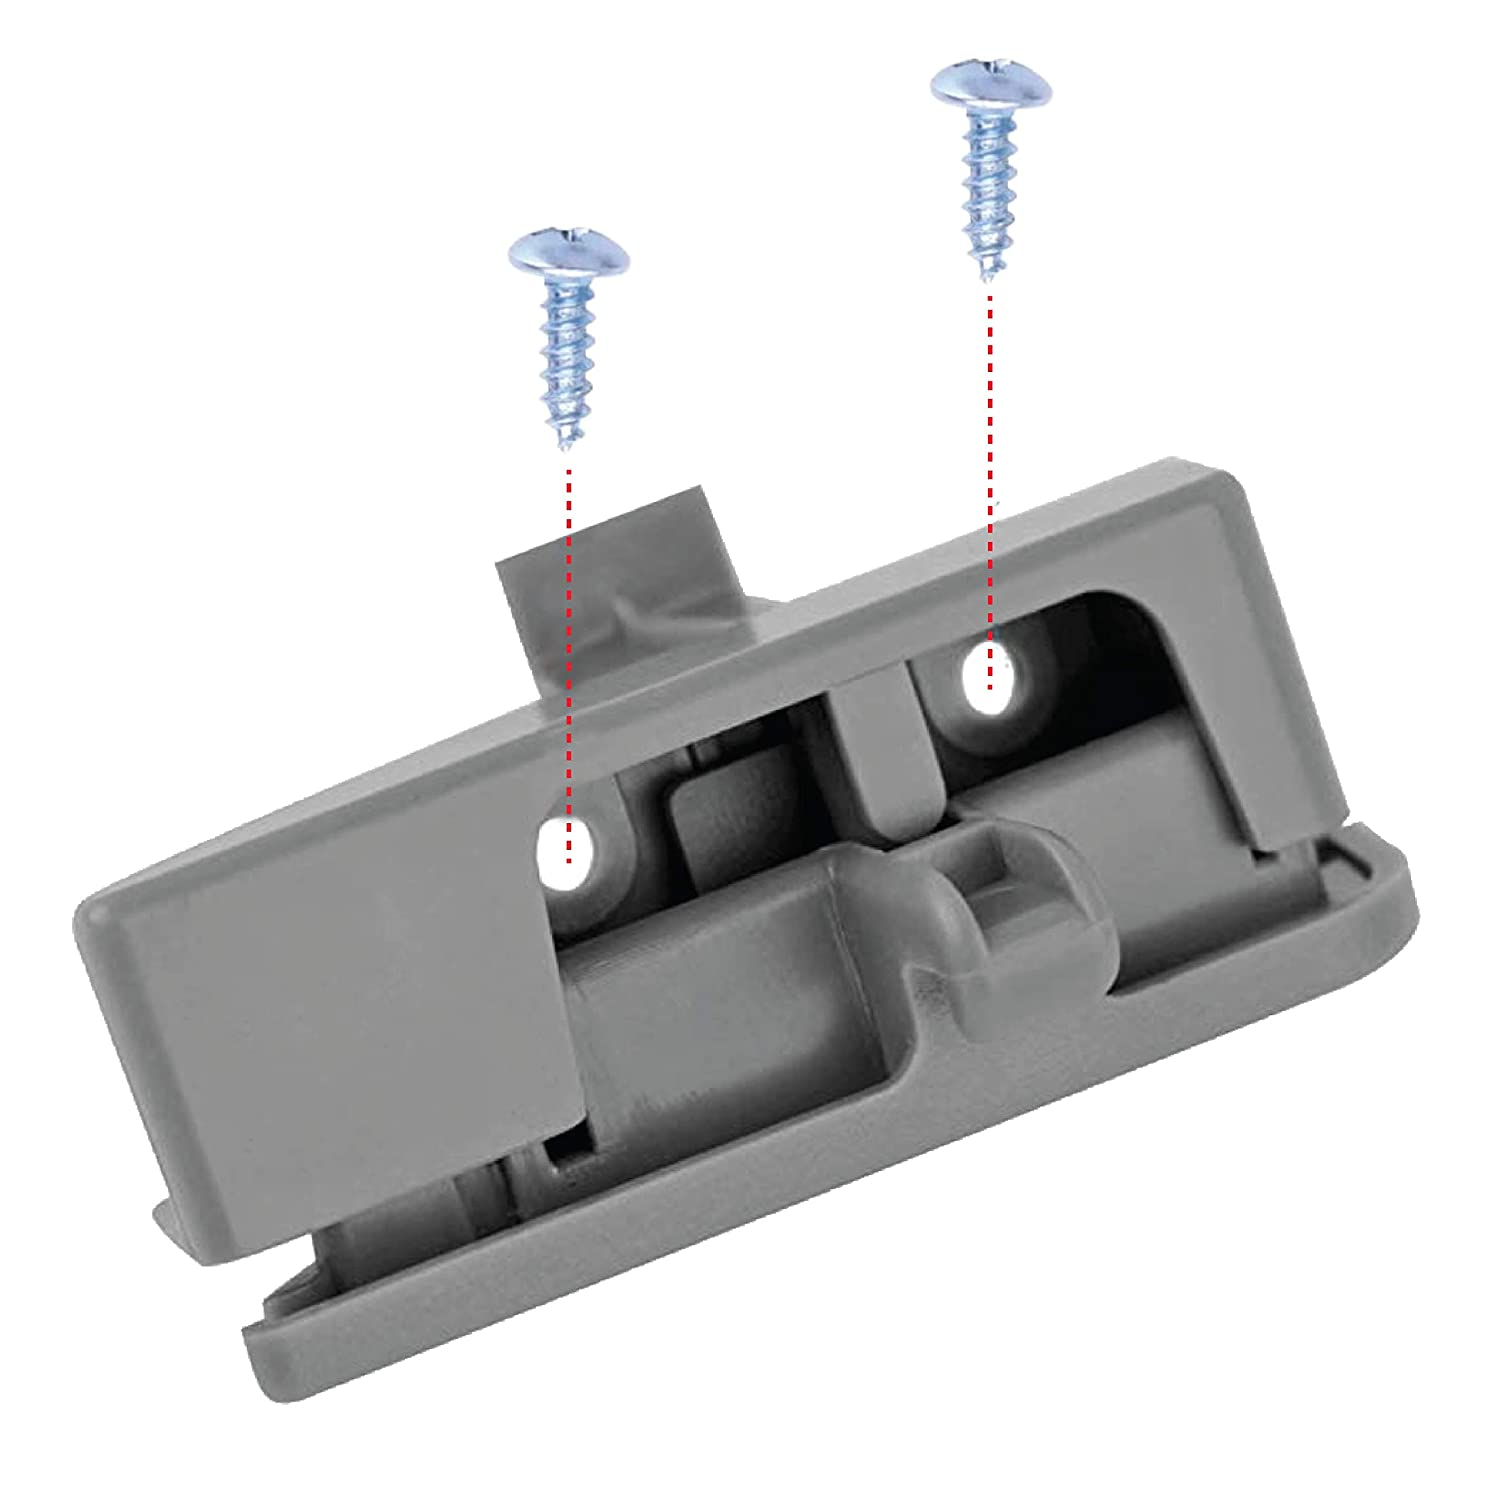 with Screwdriver /& 2 Screws Included EcoAuto Center Console Latch for Toyota Tacoma Gray OEM-58910AD030B0 2005-2012